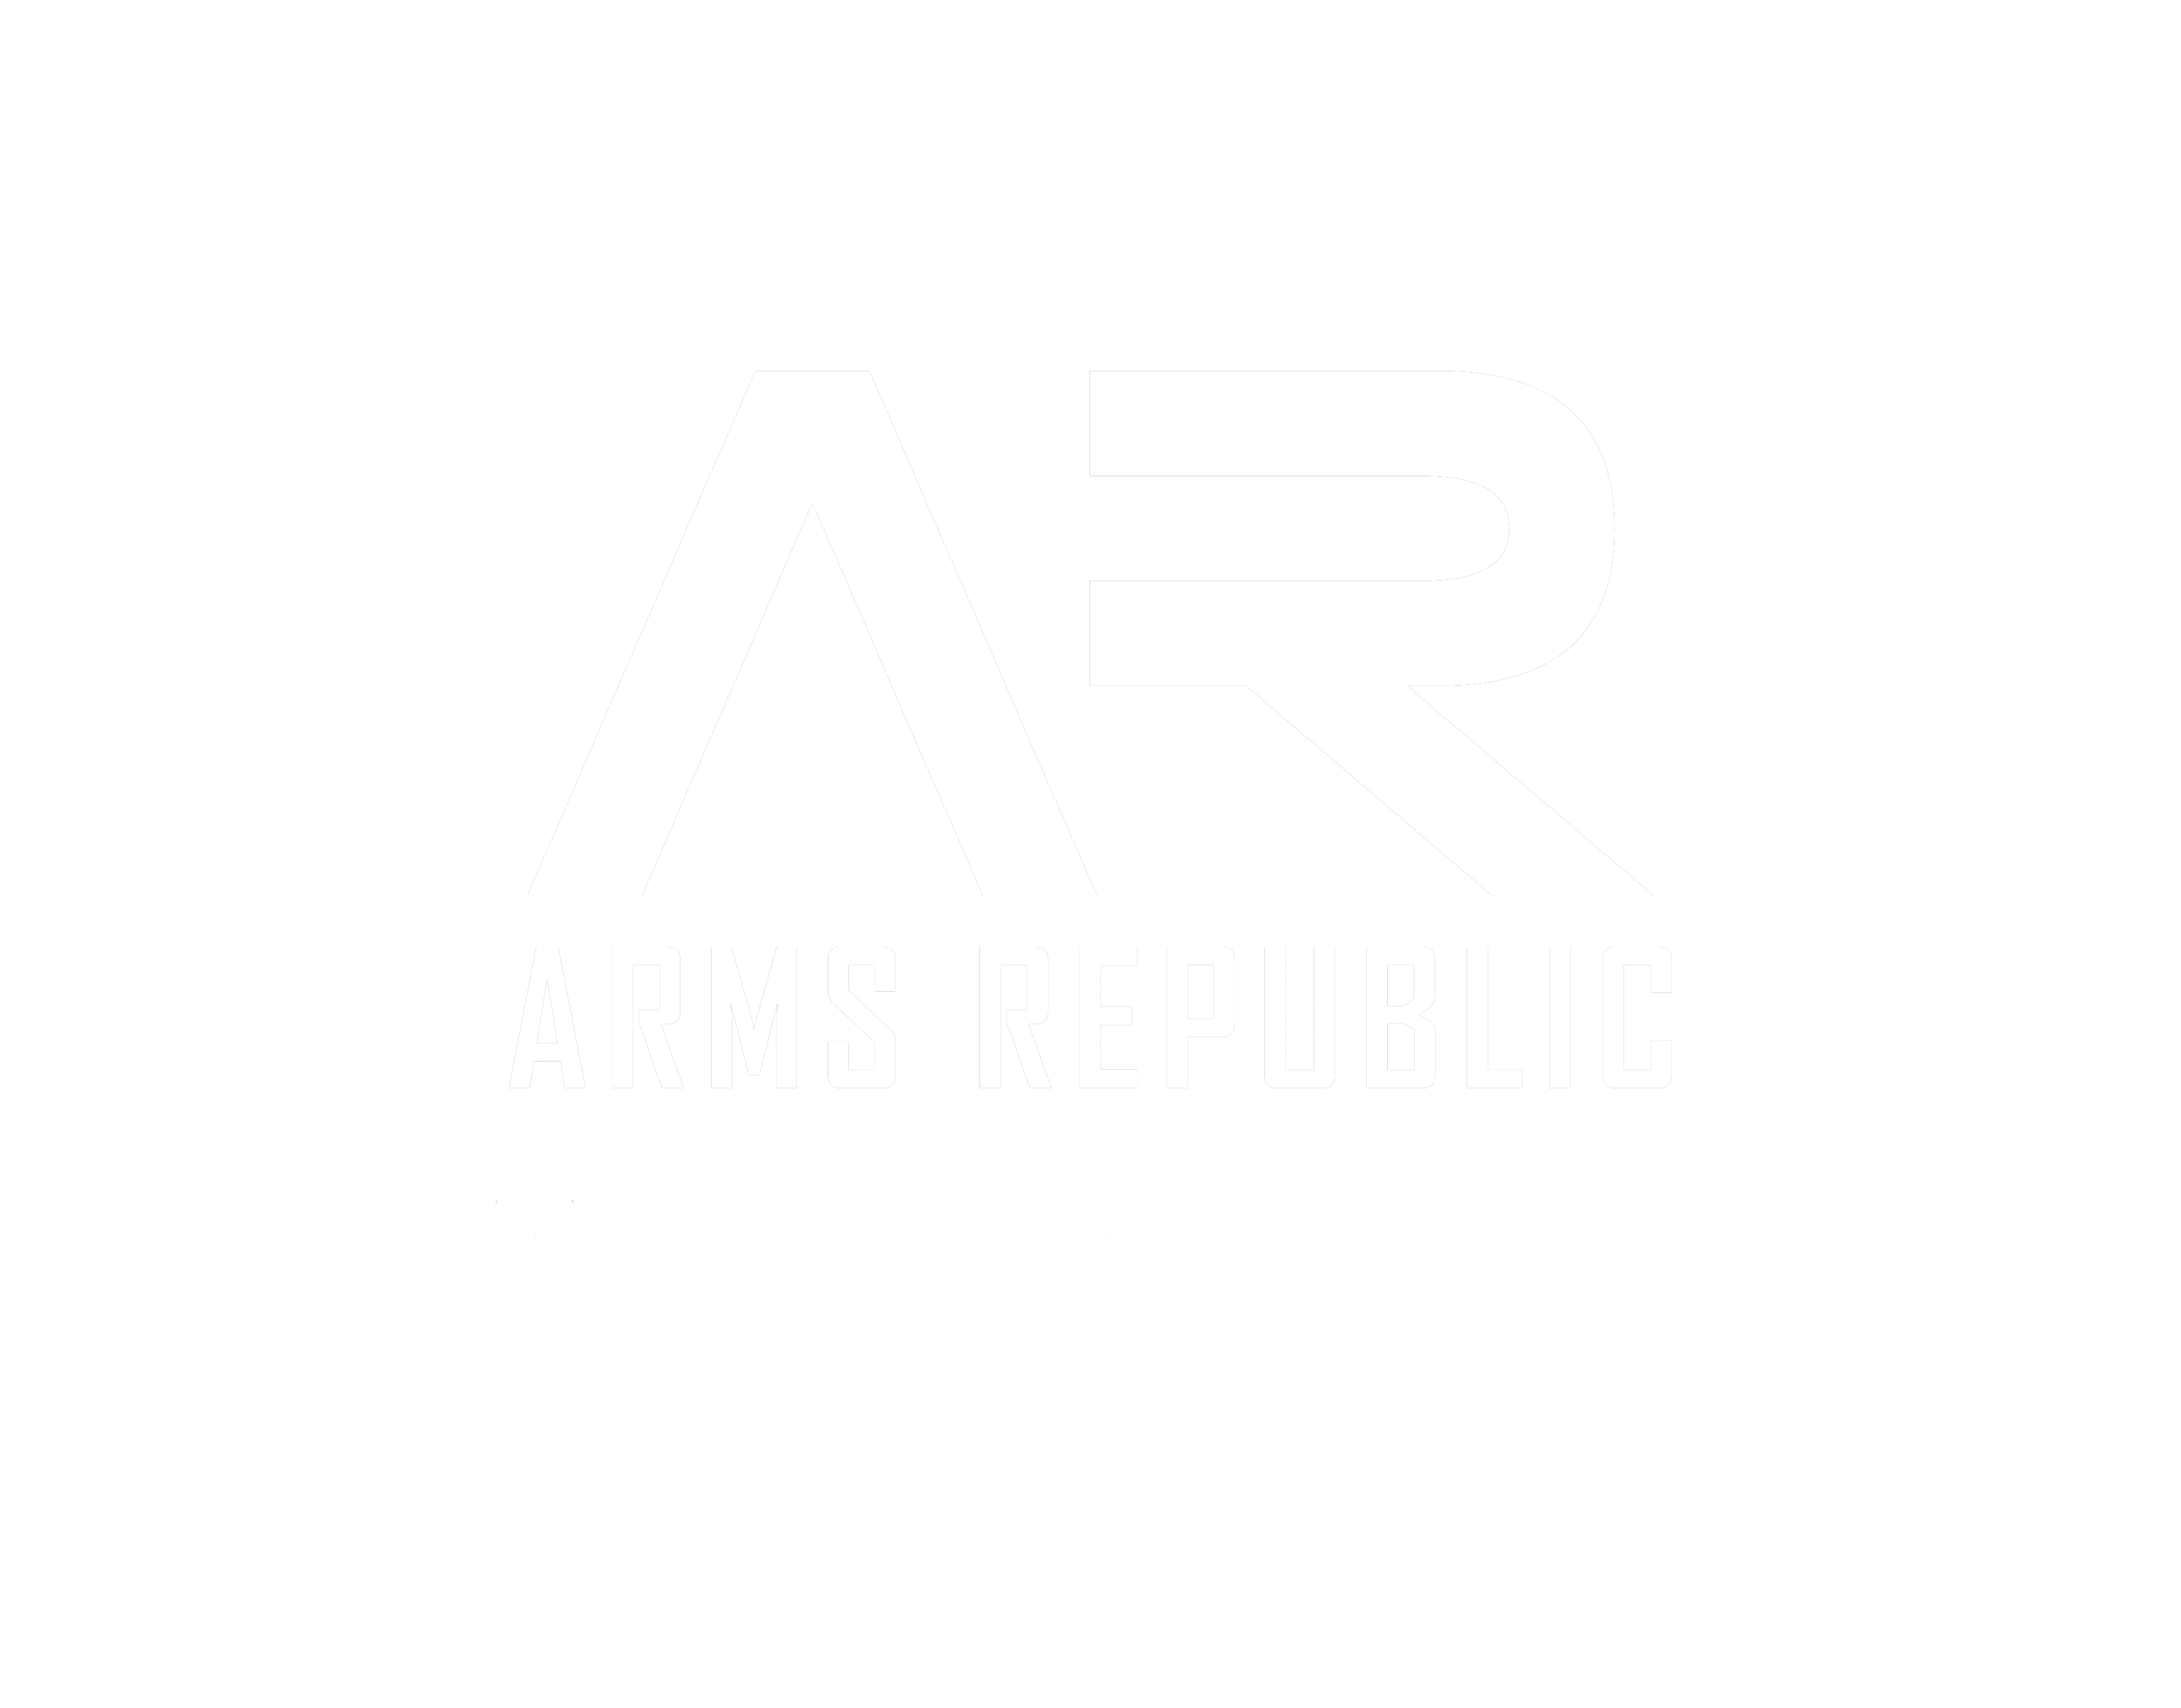 Arms Republic